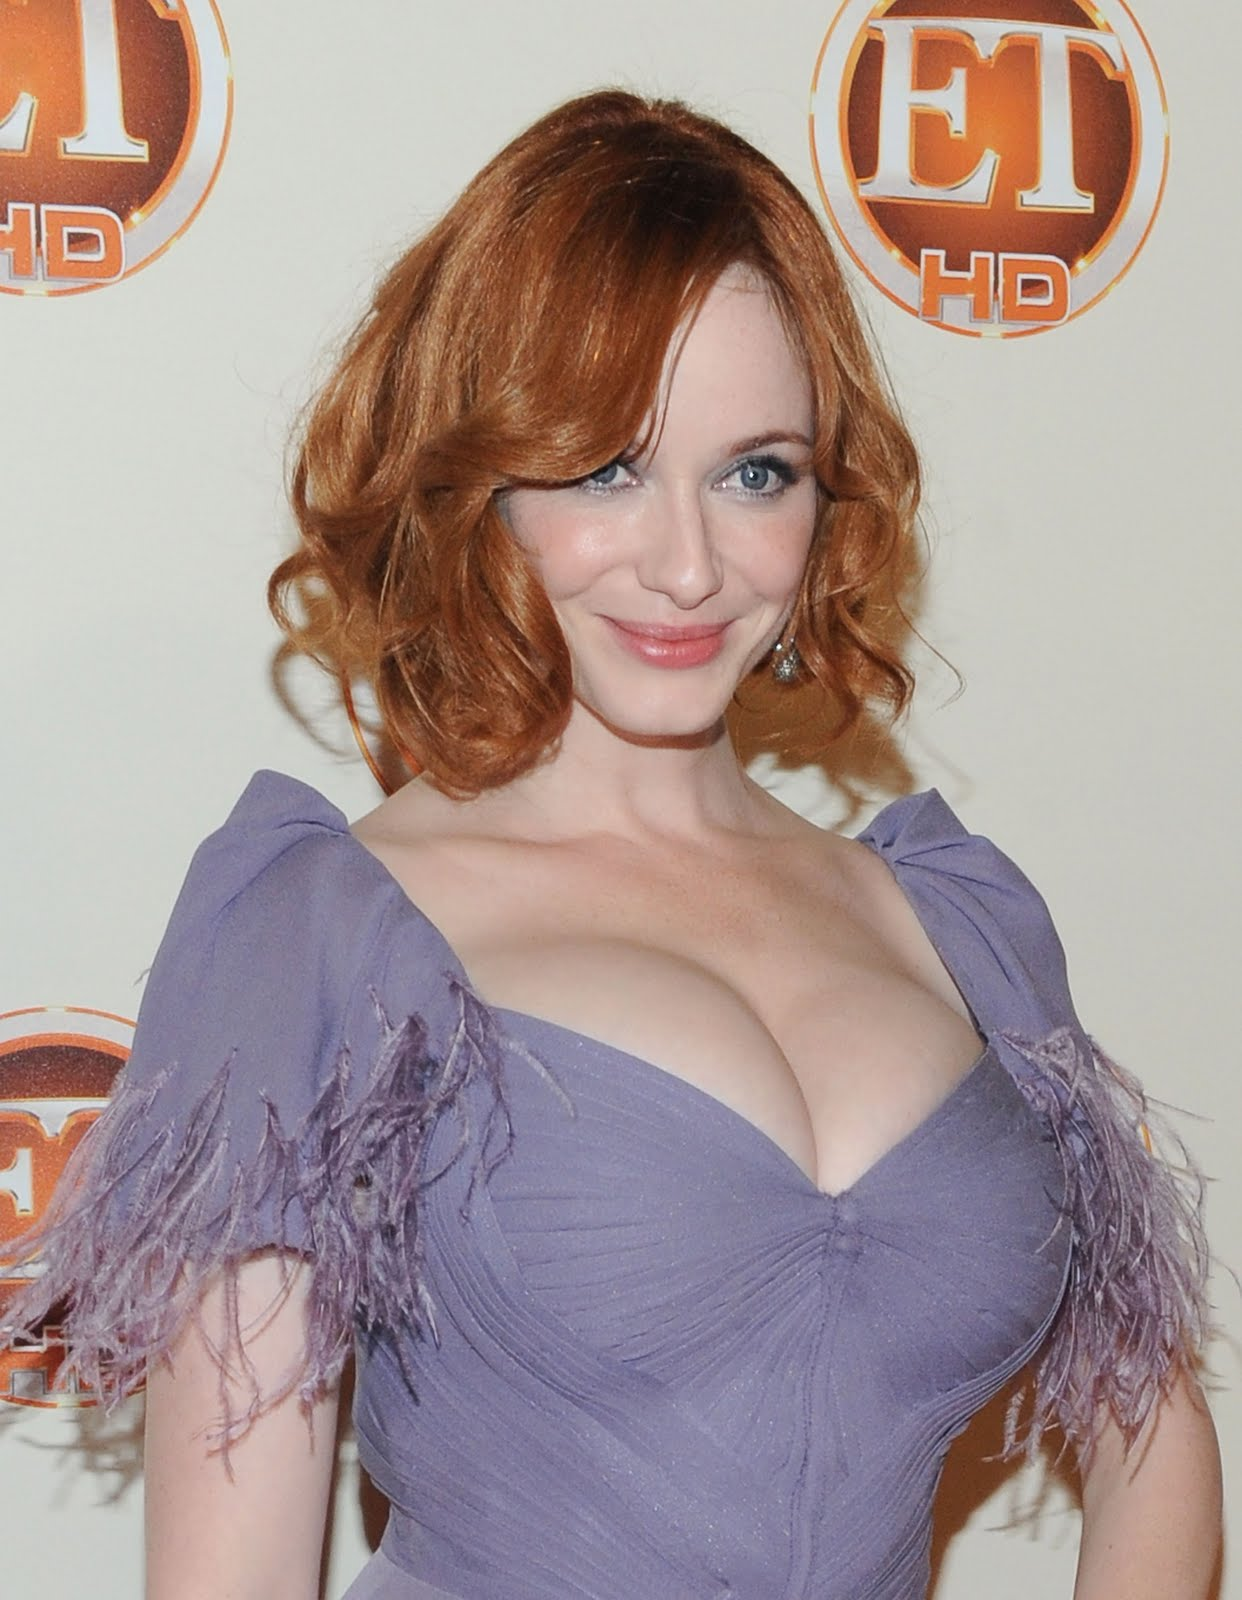 http://2.bp.blogspot.com/-iZLZ5PVxgcs/Te5Mq7HvrrI/AAAAAAAAAYU/7dLIBJSwuGA/s1600/94926-christina-hendricks-entertainment-tonight-em.jpg